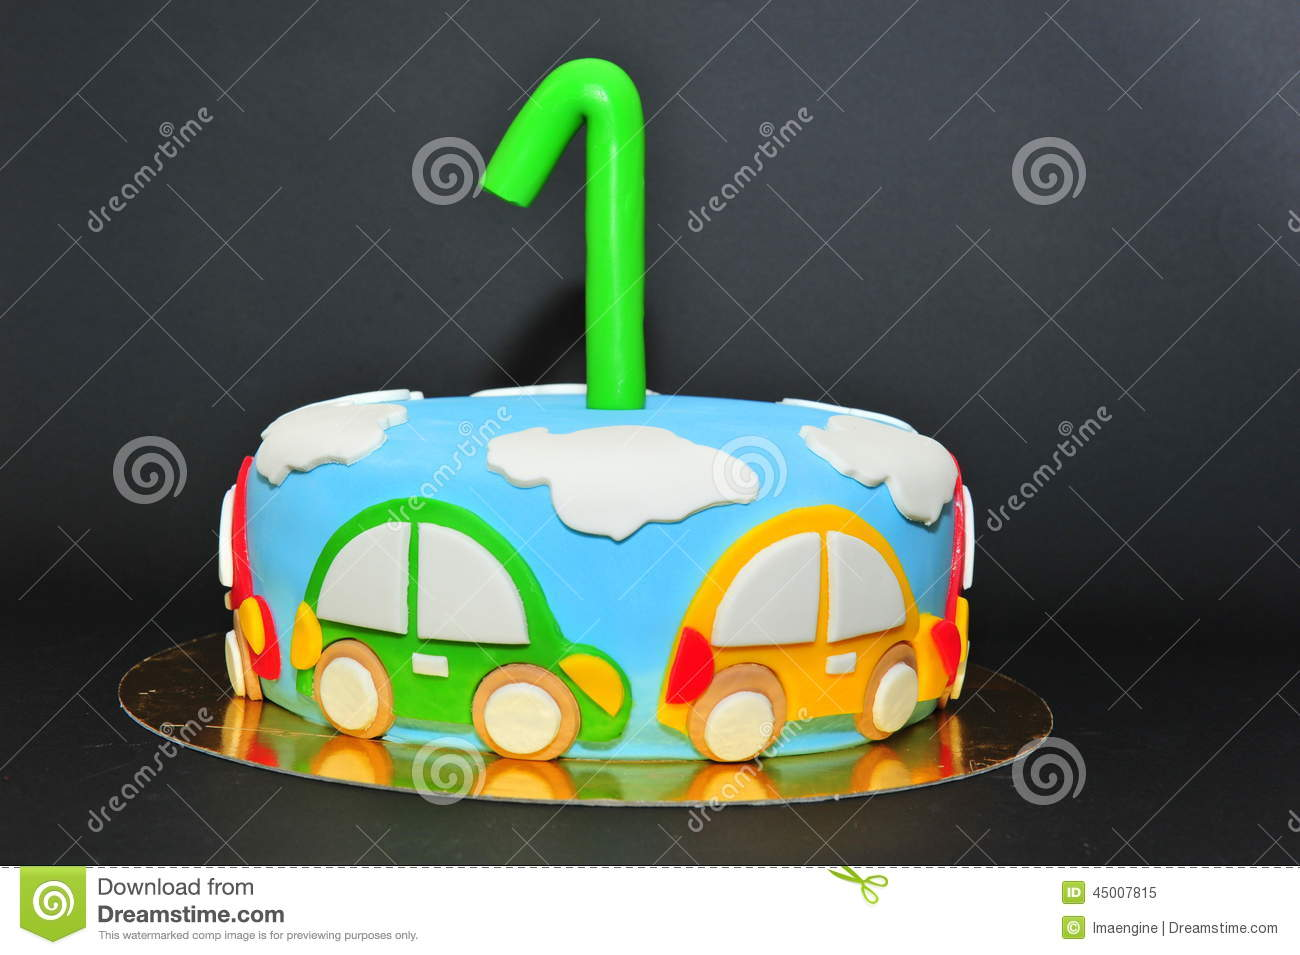 Funny Cars Theme Kids Fondant Cake Stock Image Image of brown